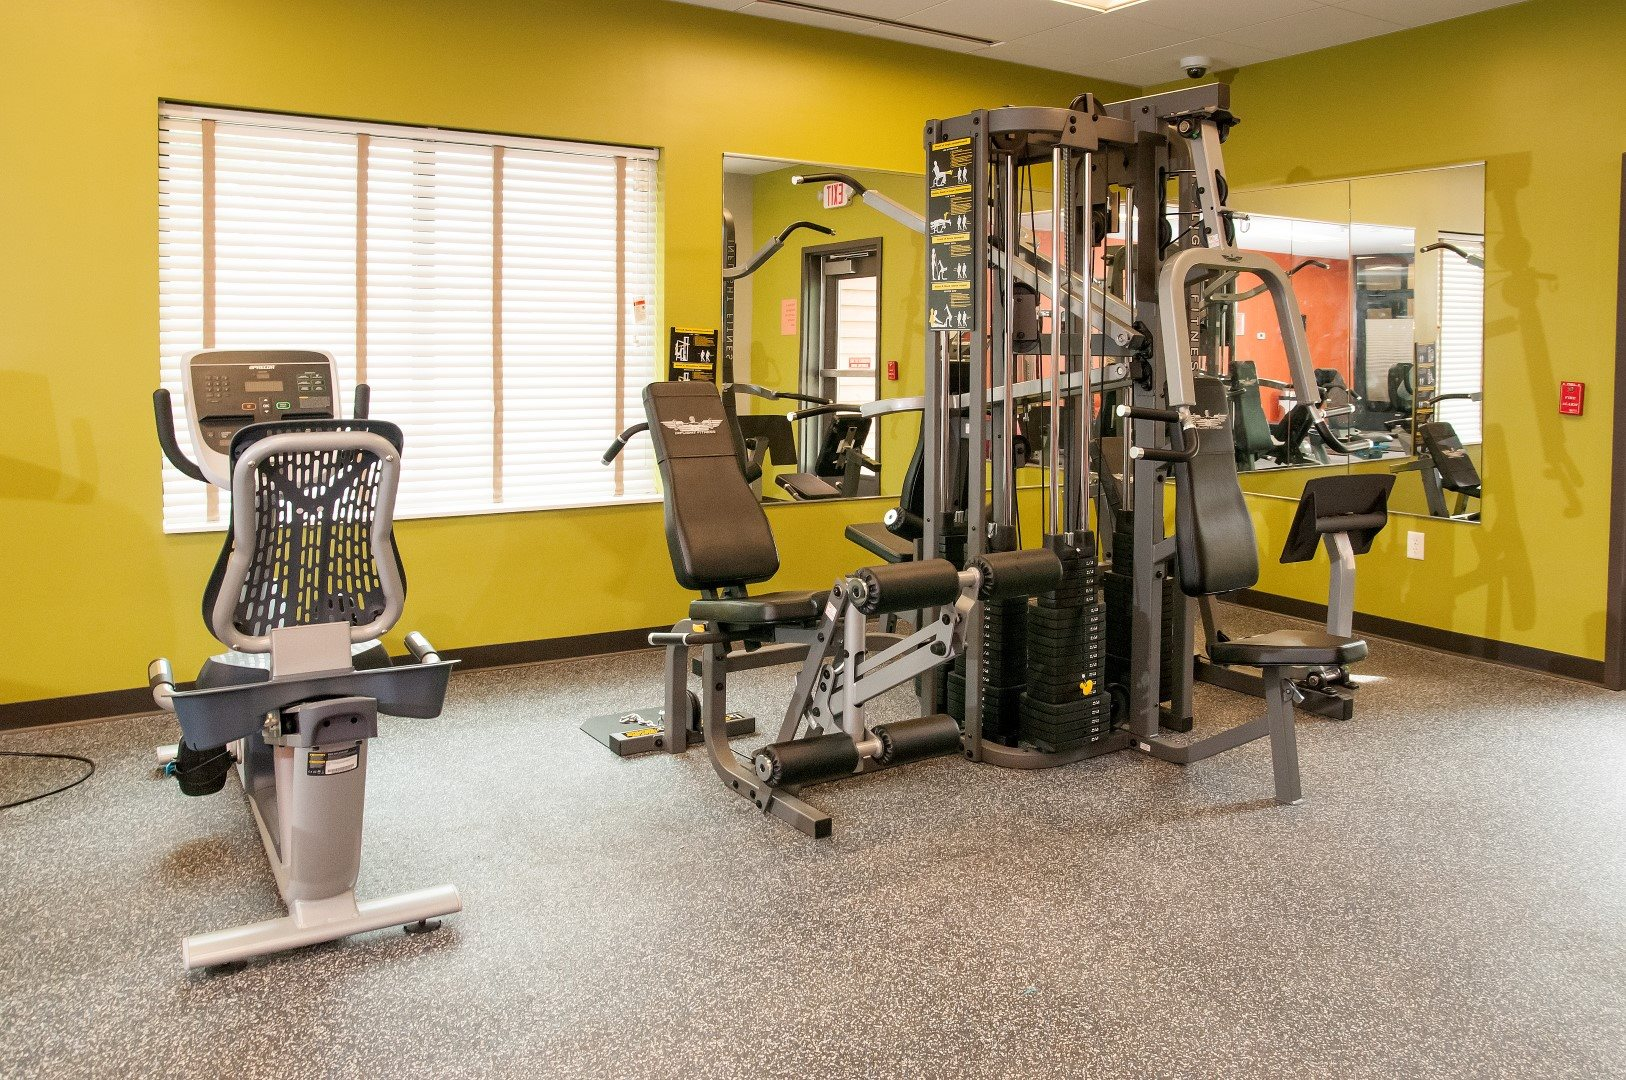 24 hour Fitness Center at Terra Pointe Apartments, Minnesota